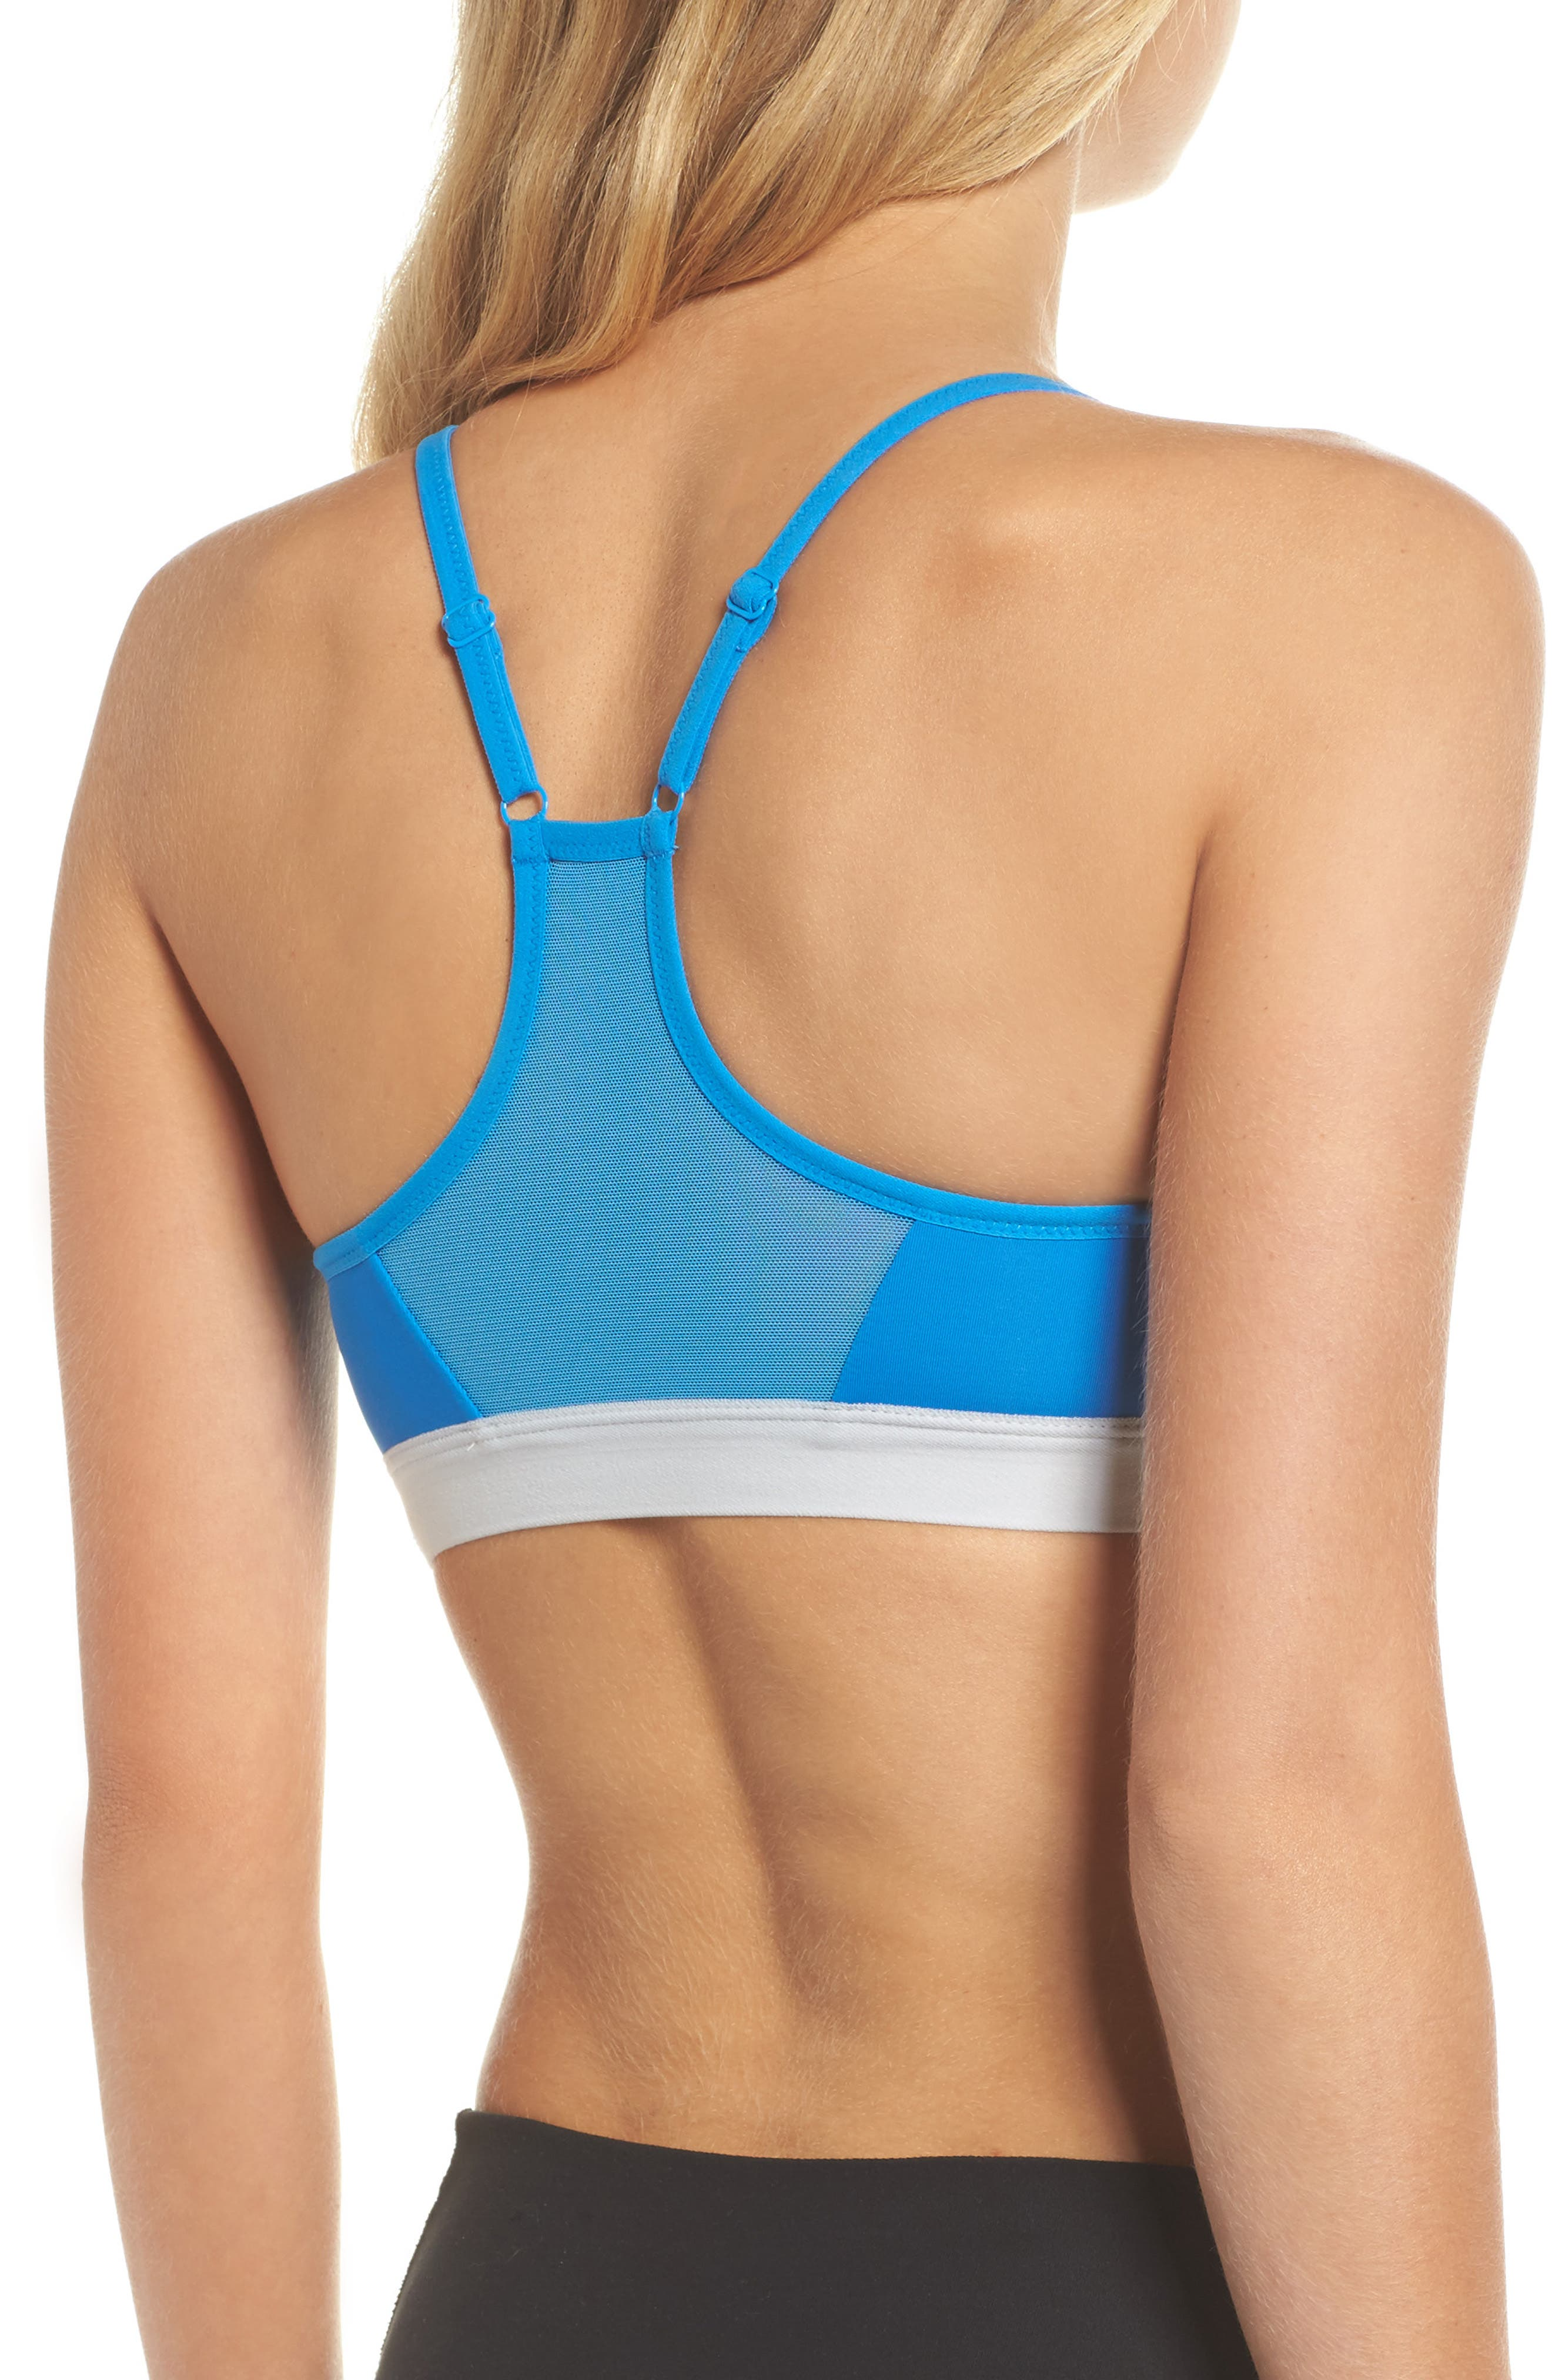 Pro Indy Dry Sports Bra,                             Alternate thumbnail 2, color,                             Lt Photo Blue/ Pure Platinum